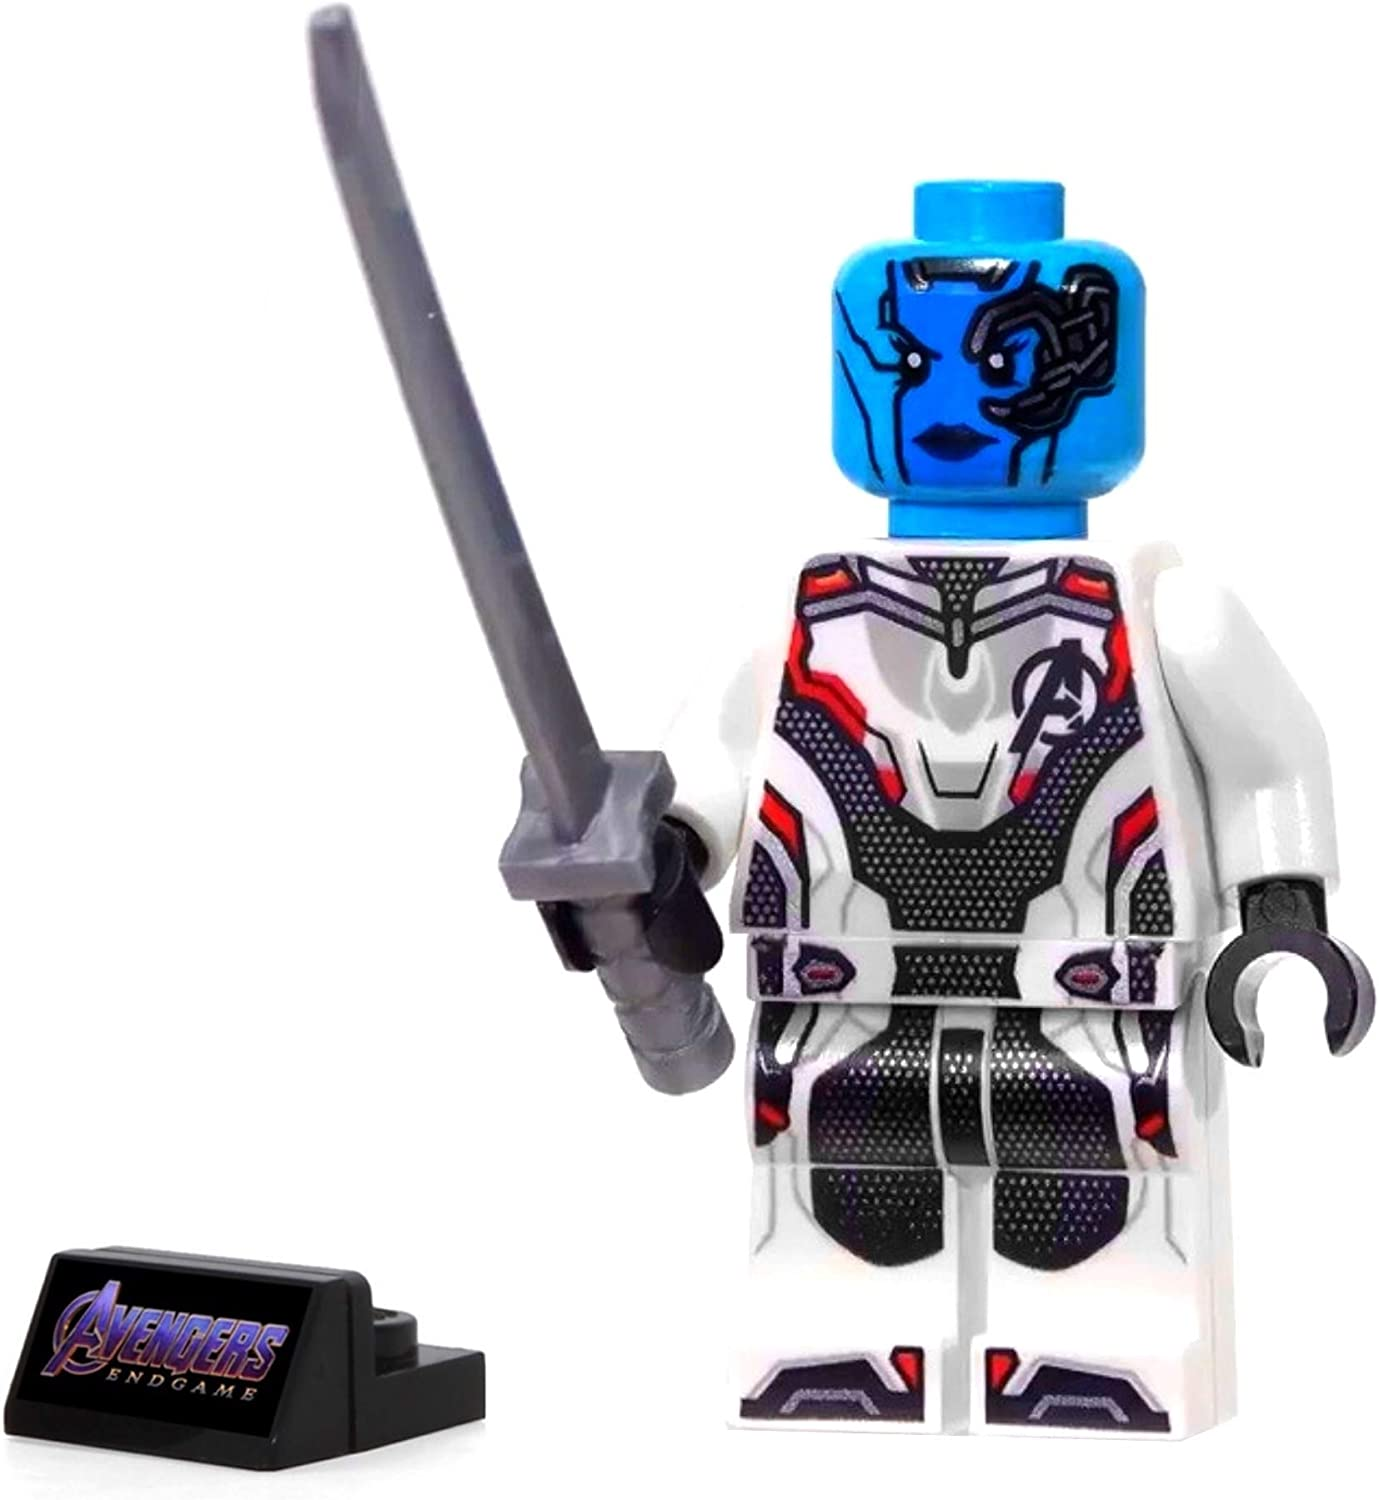 LEGO Super Heroes Avengers Endgame MiniFigure - Nebula (with White Jumpsuit and Sword) 76131